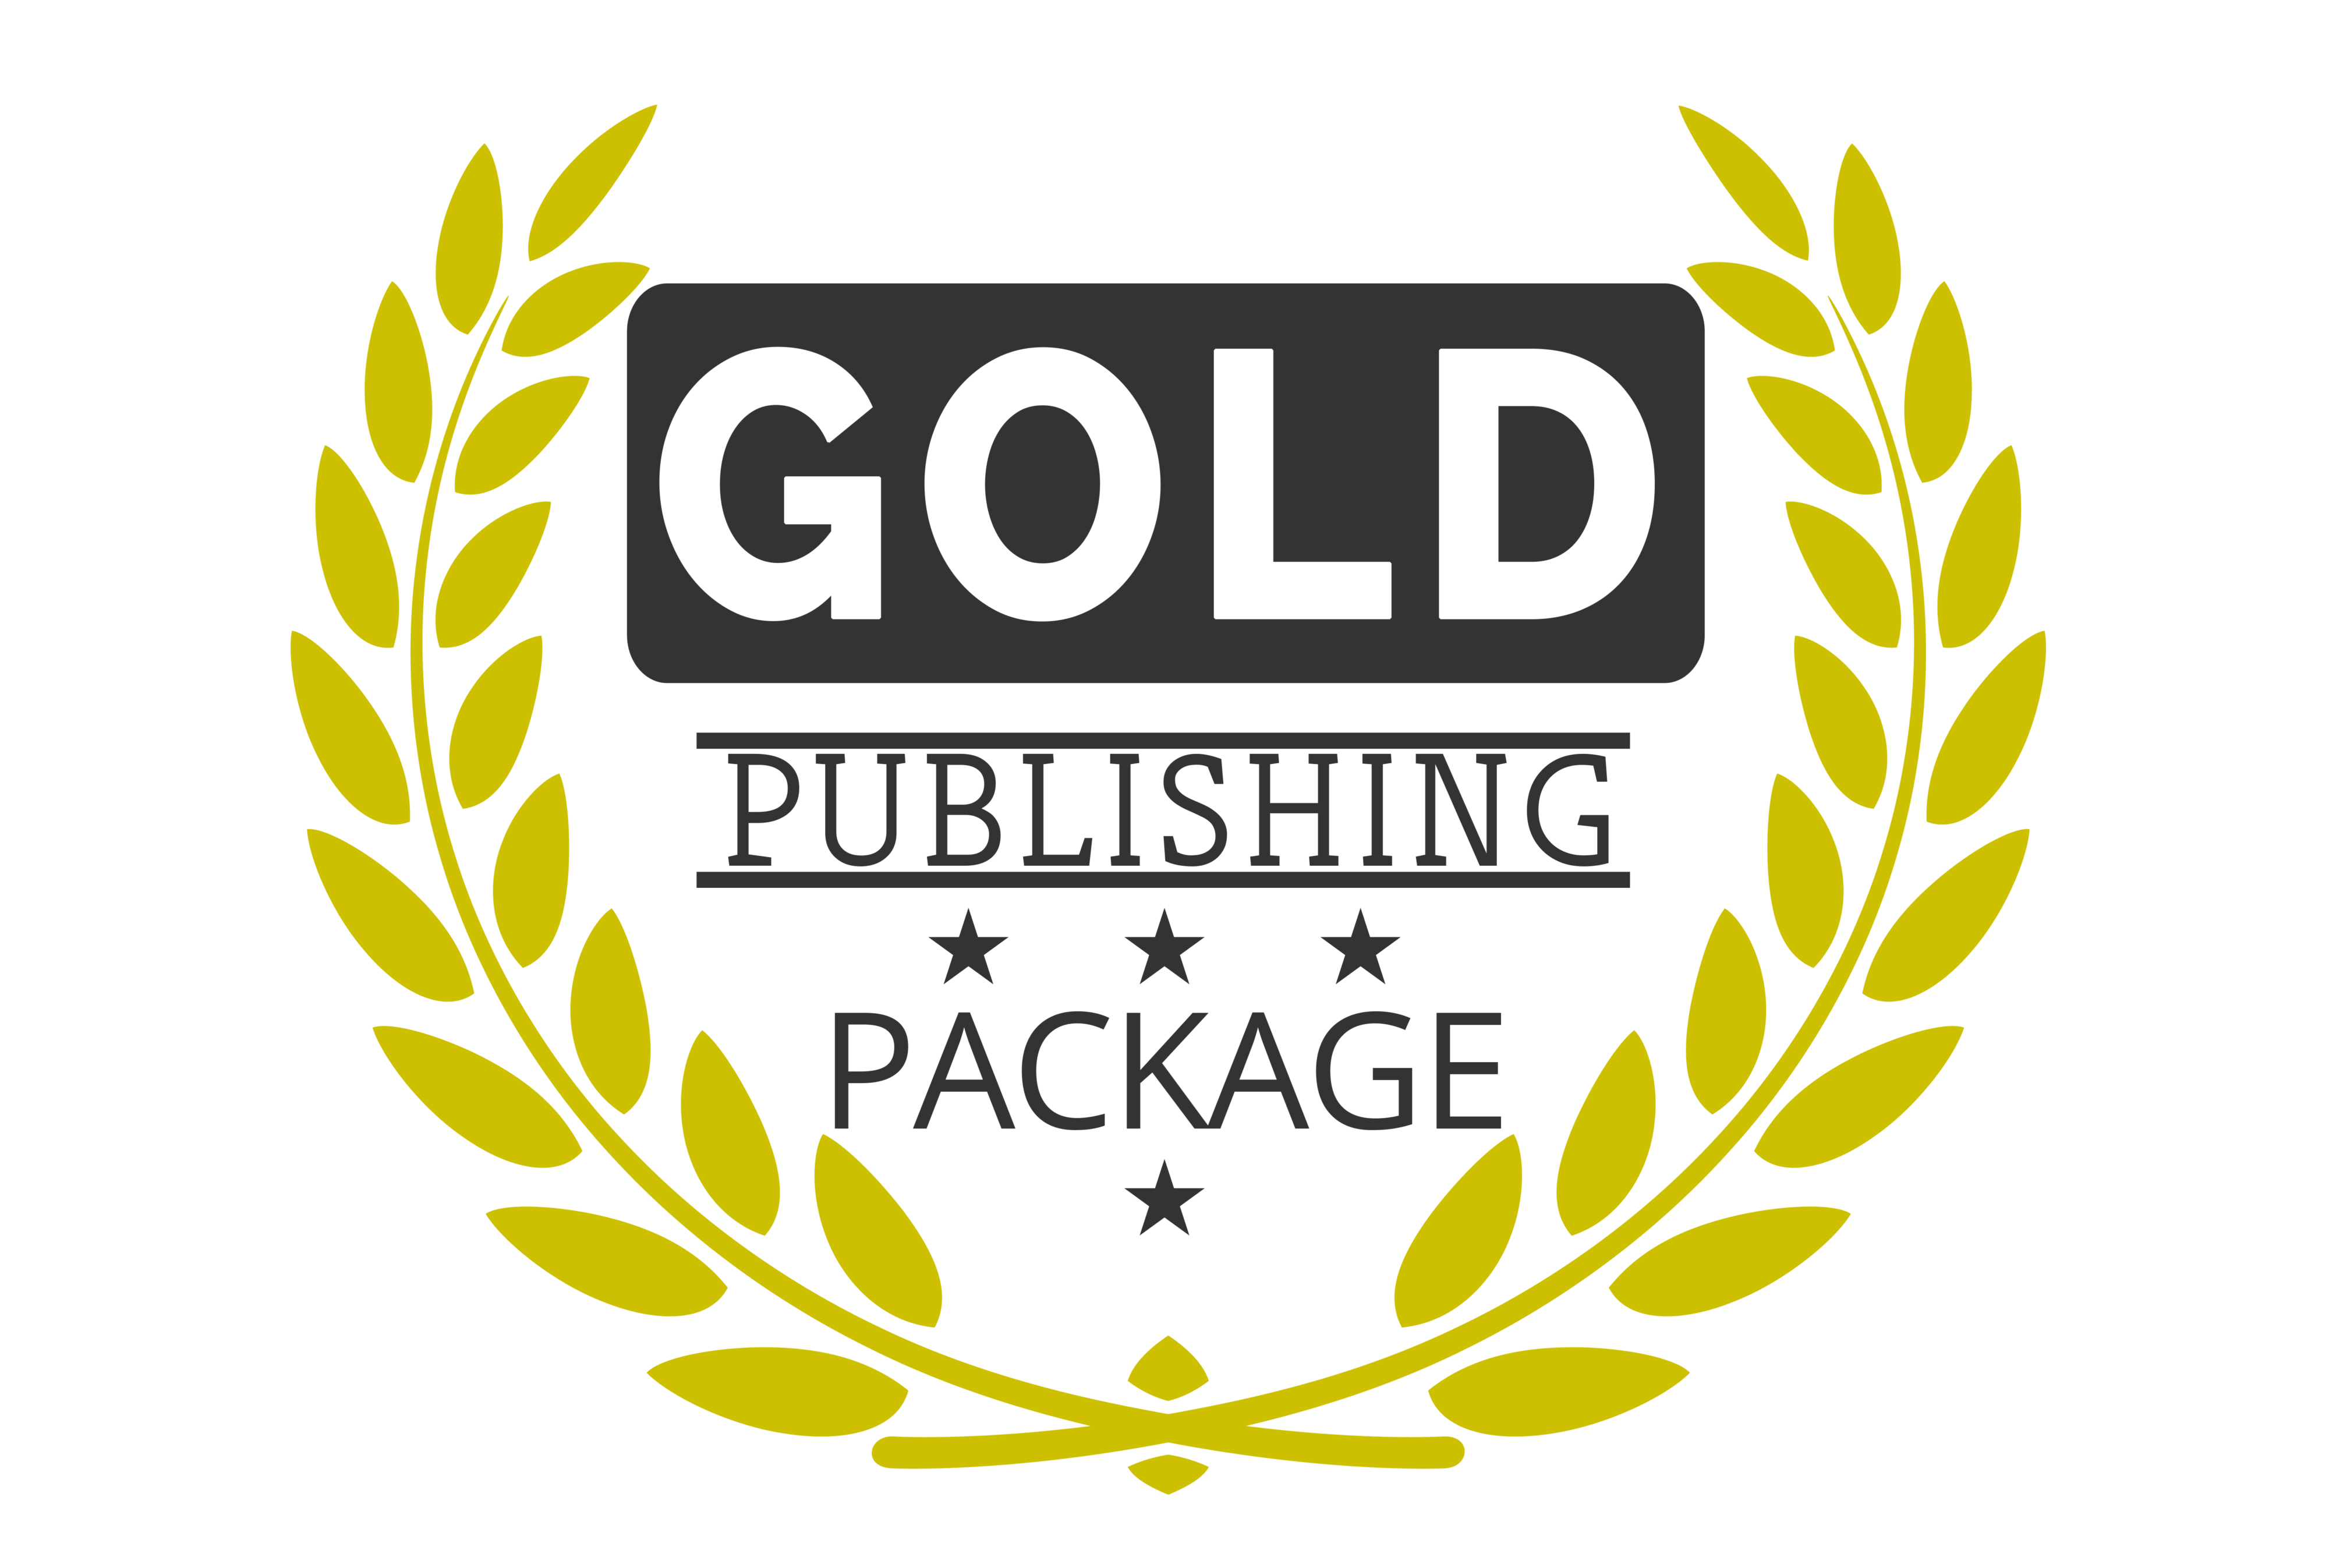 Gold Publishing Package